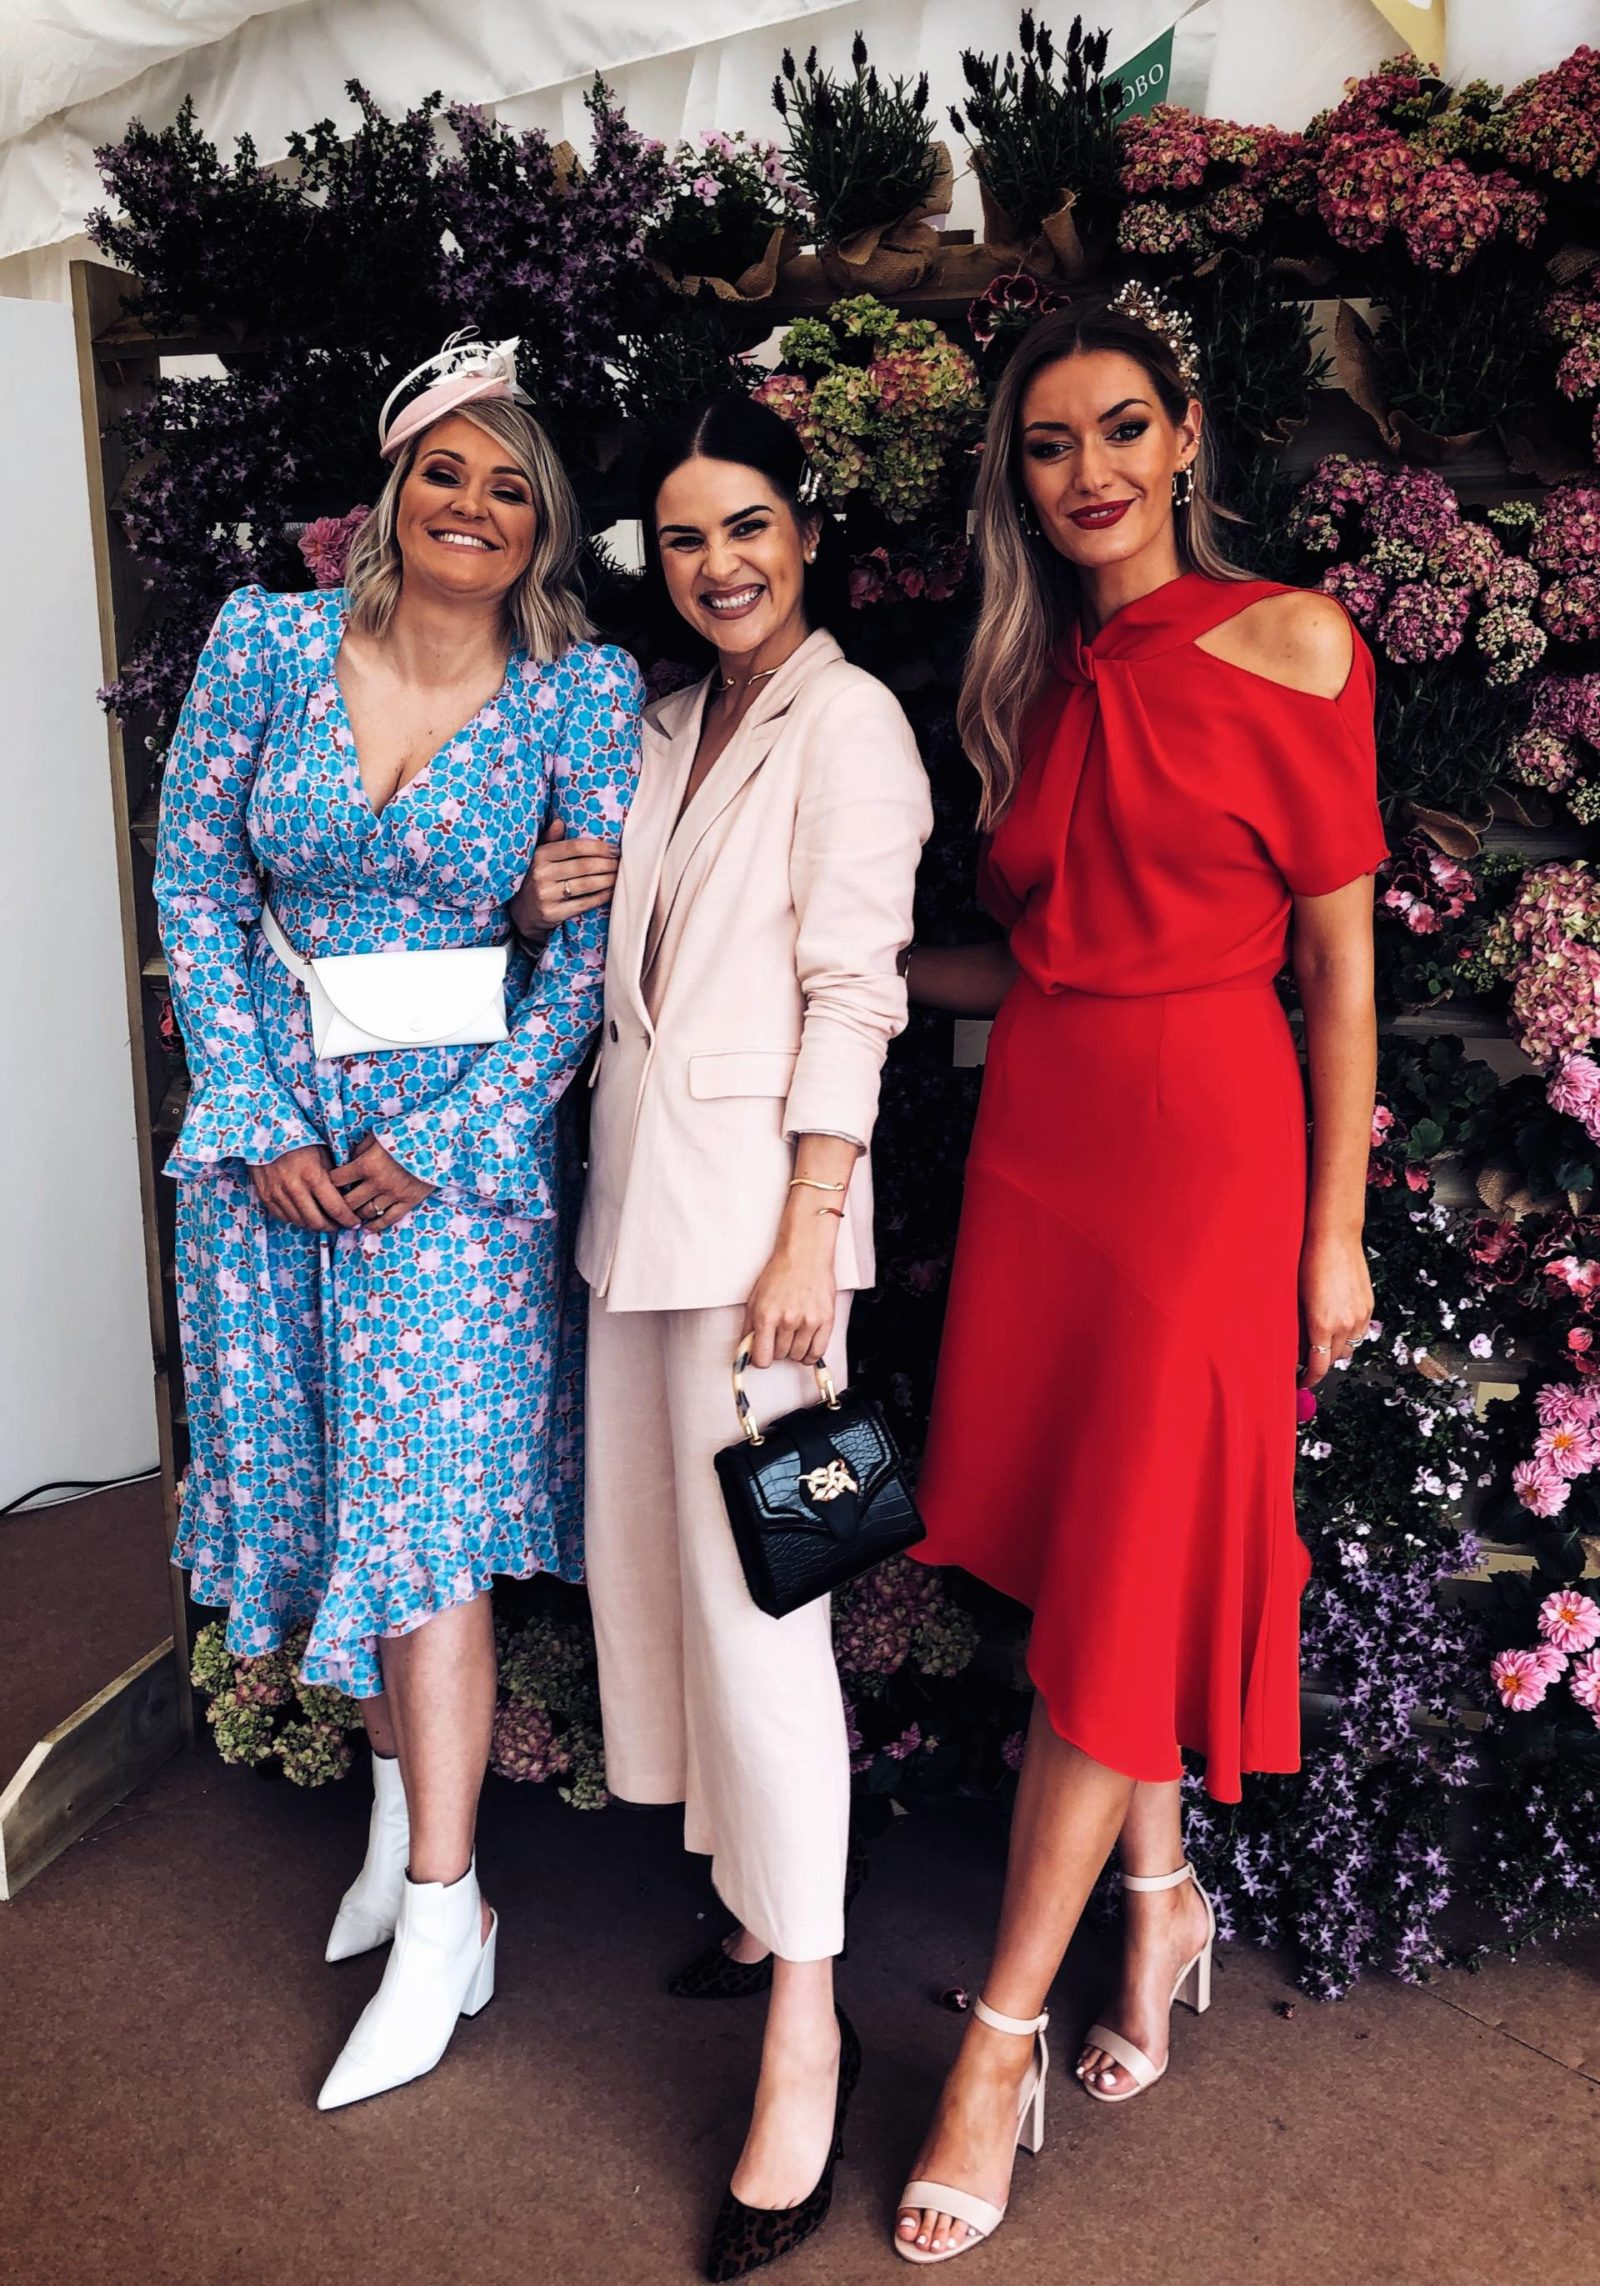 Stobo-Ladies-Day-LAFOTKA-BLOGGER-VIP-experience